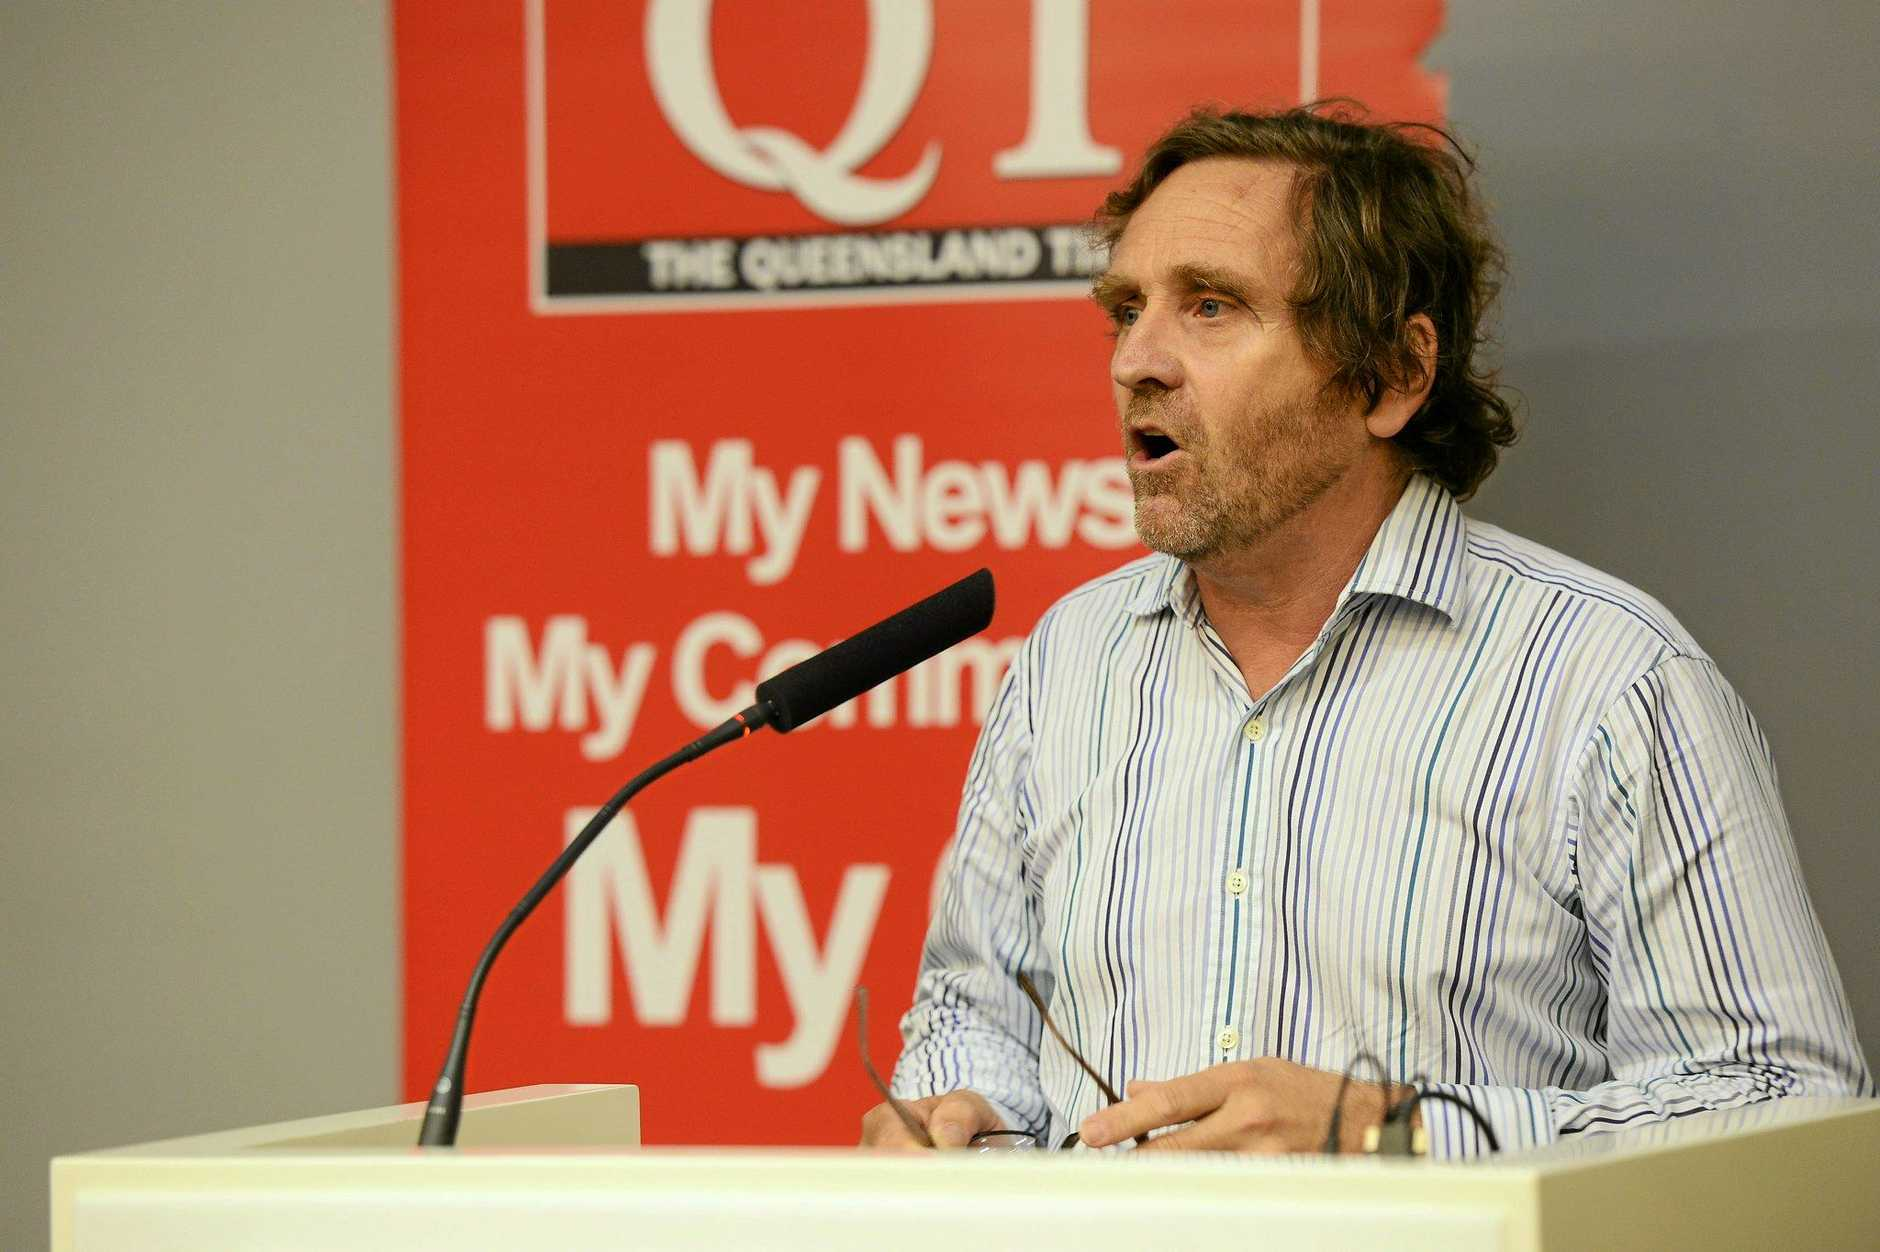 The Queensland Times Meet the Candidates forum at USQ Ipswich. Mayoral candidate Peter Luxton. Photo: David Nielsen / The Queensland Times